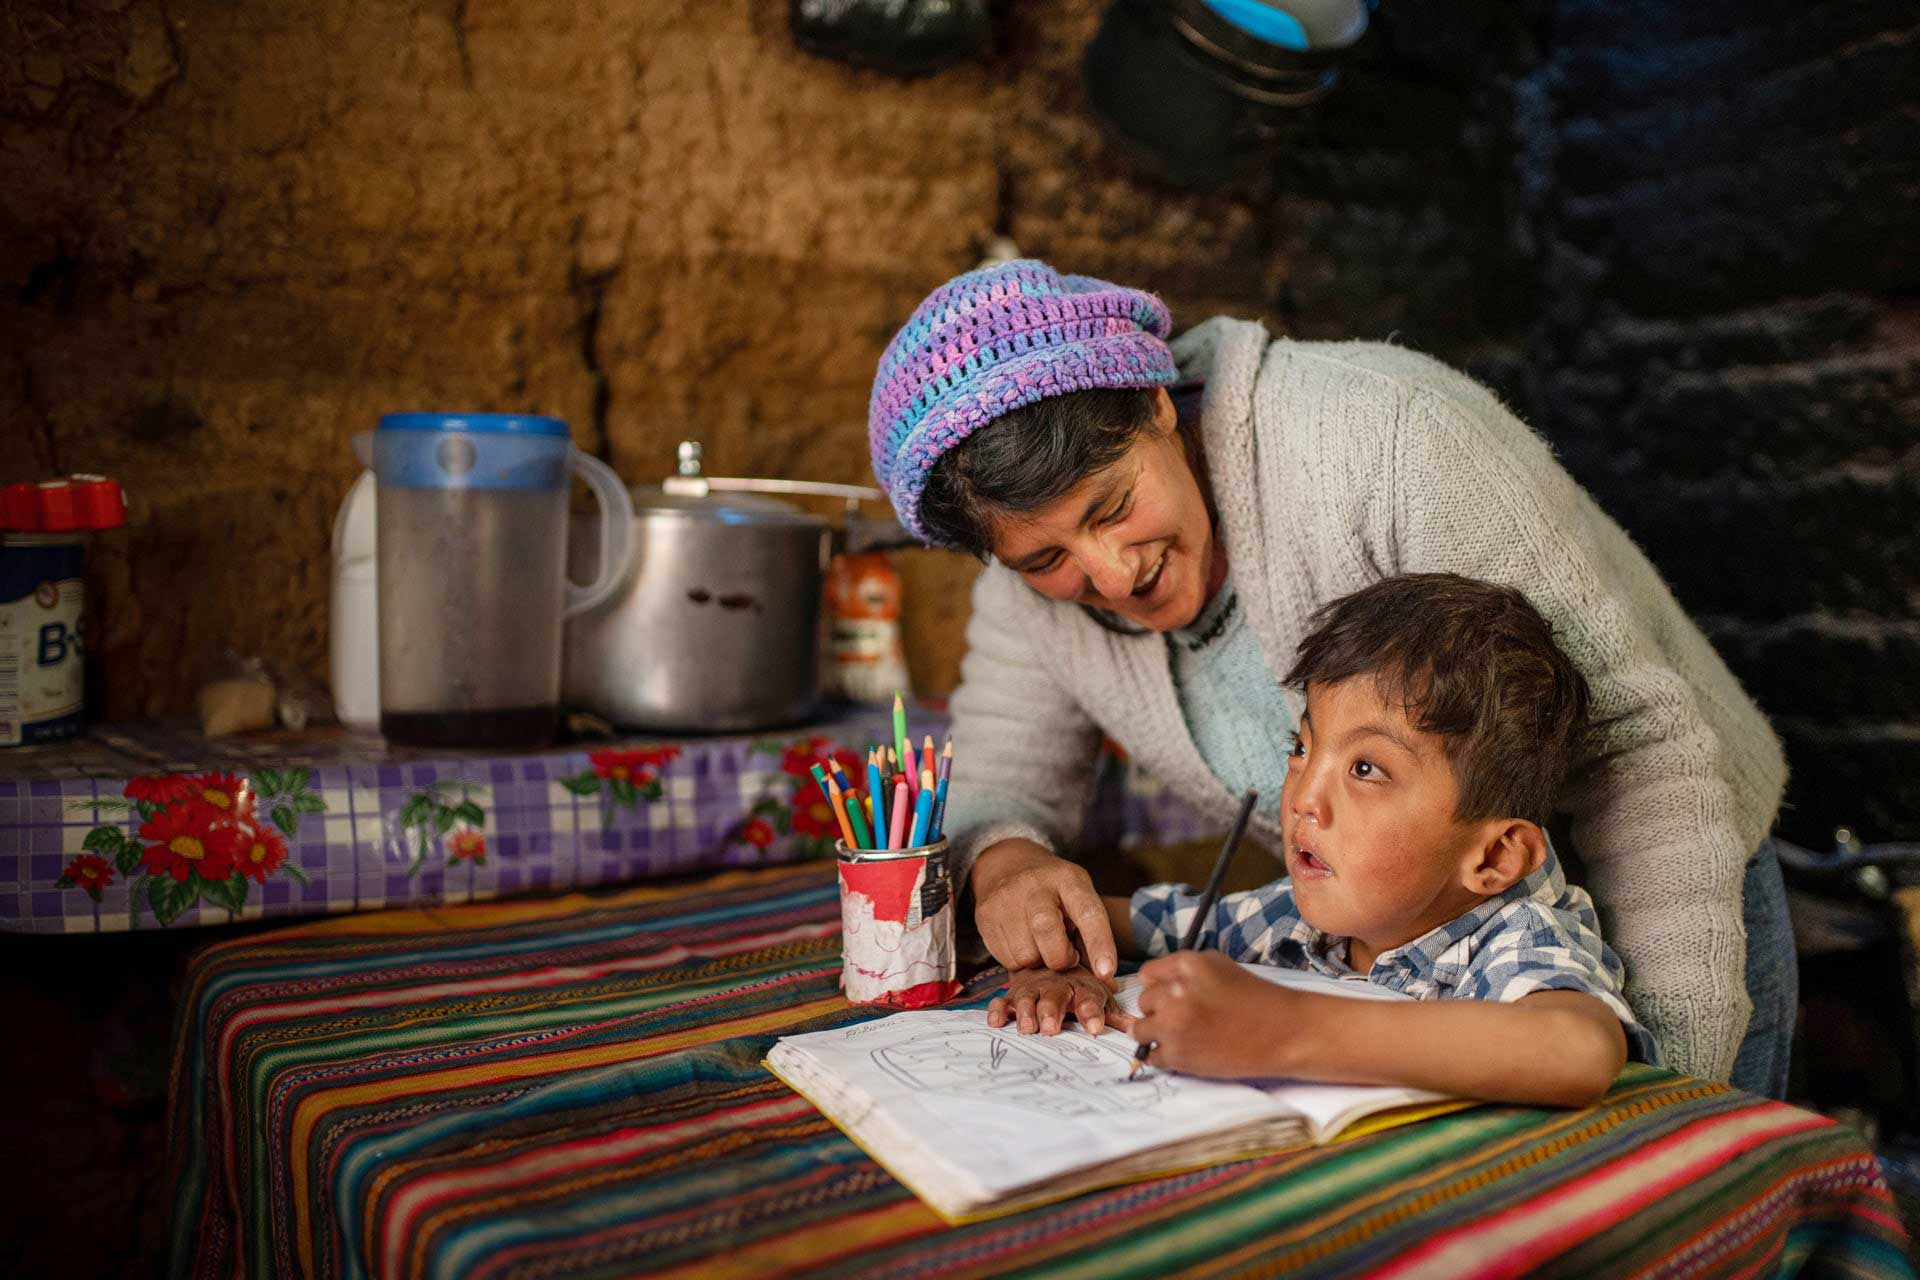 Jesus, 7, draws pictures at home in Peru with his mom